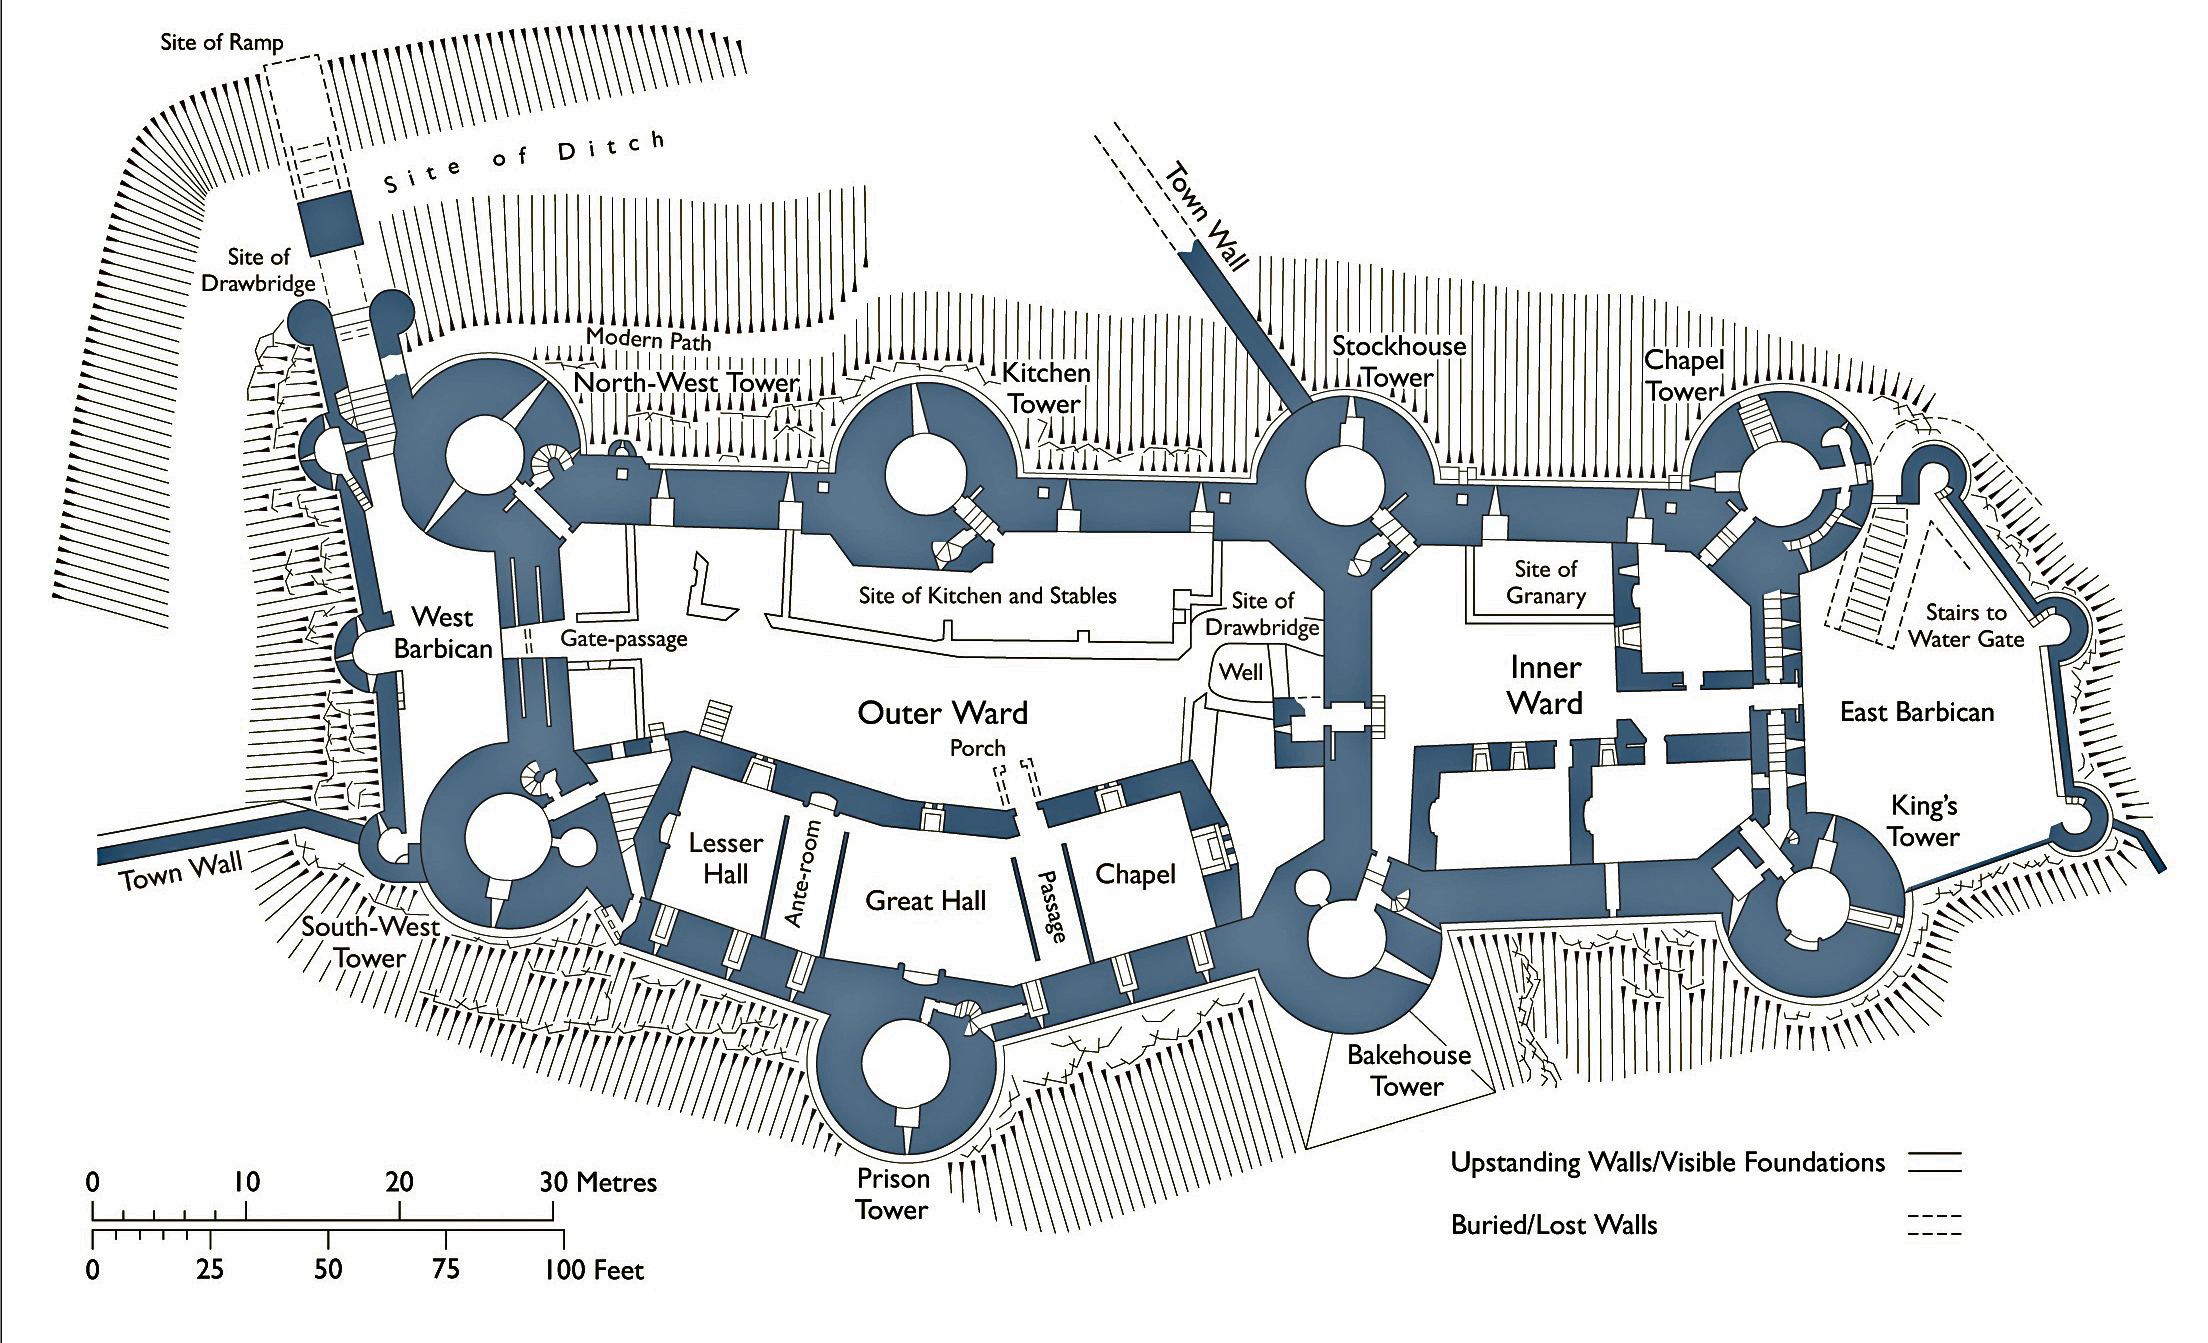 https://upload.wikimedia.org/wikipedia/commons/e/e2/Conwy_Castle_plan.jpg